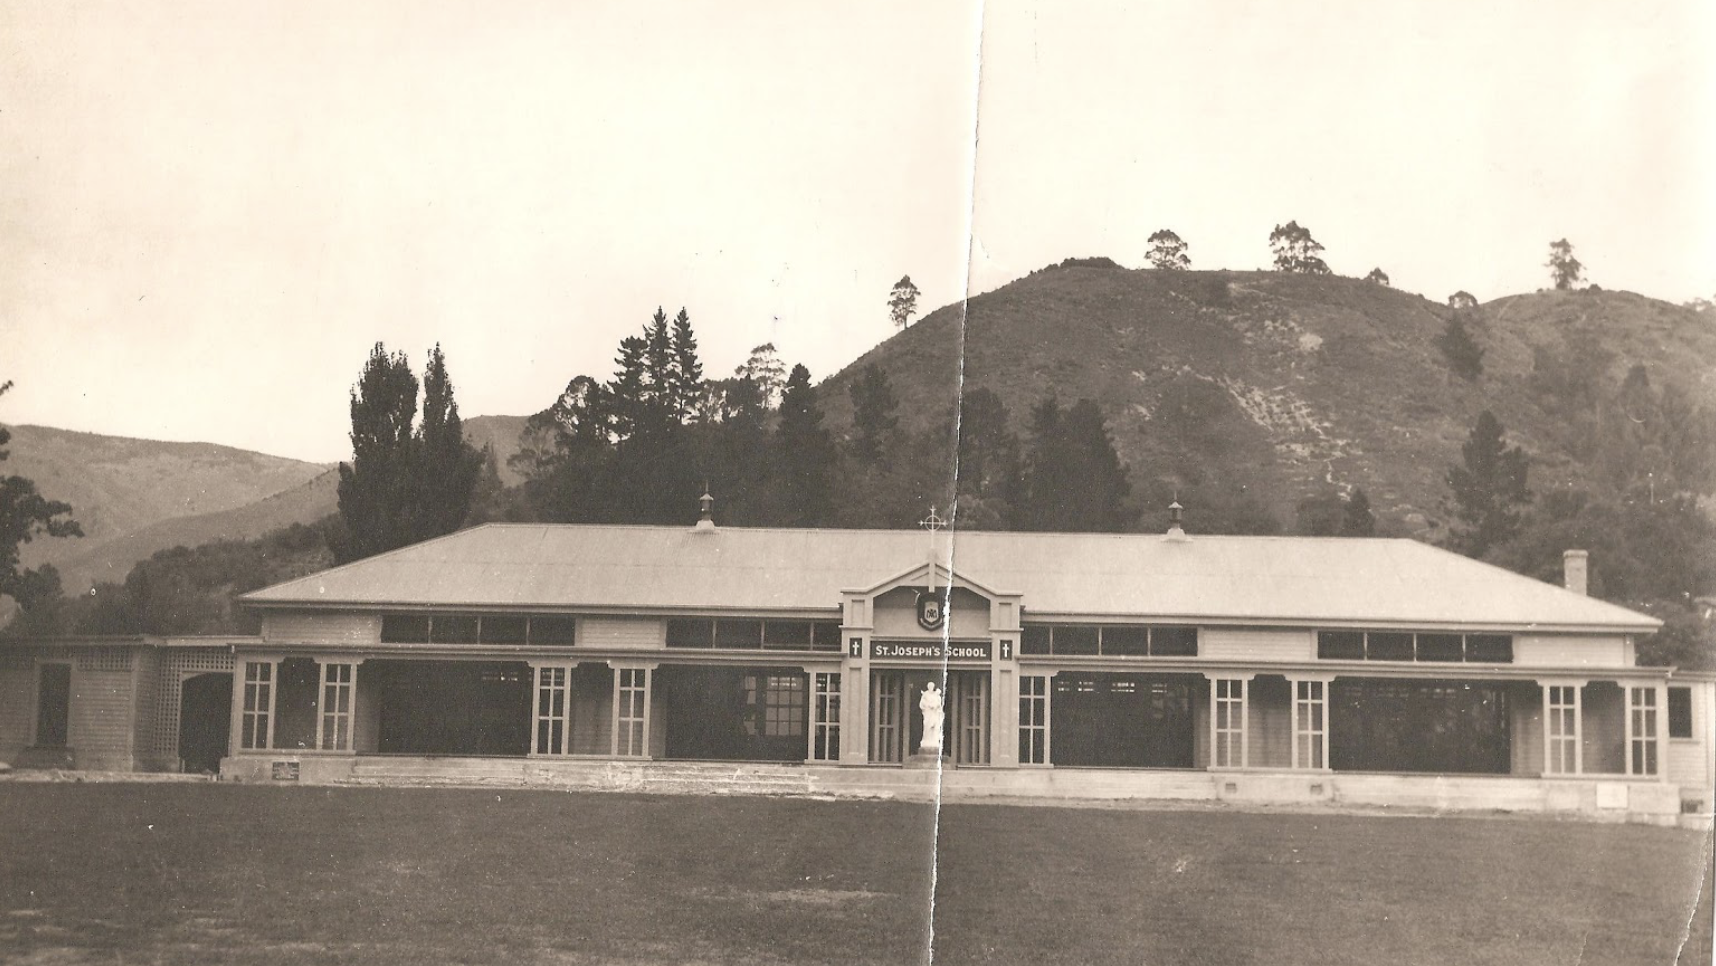 THE NEW BUILDING, 1932